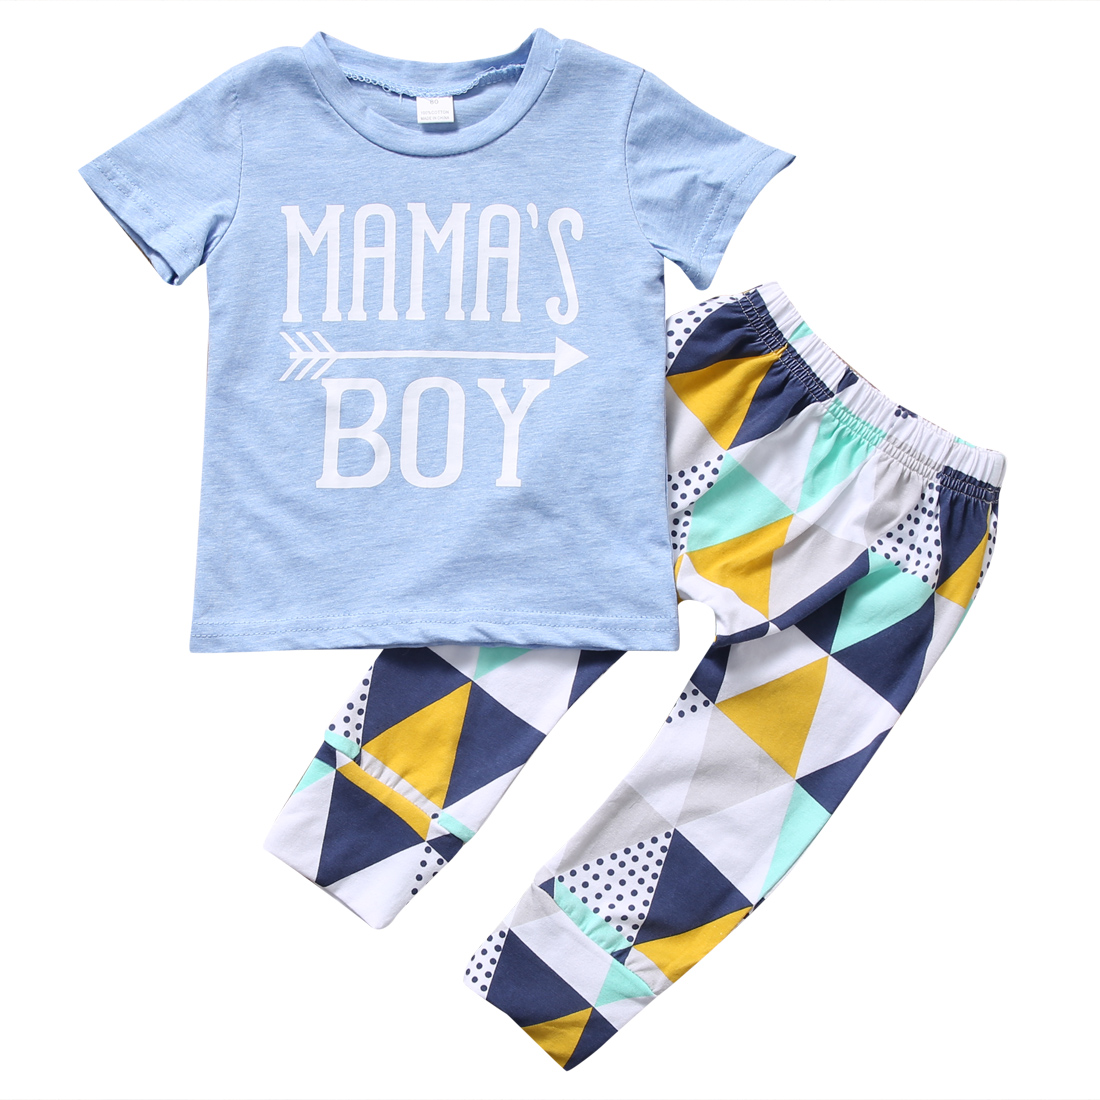 2PCS Newborn Baby Boys Outfits T-shirt Tops+ Pants Sets Clothes Summer Short Sleeve Mama Boy Print Tees Casual Clothes casual print long sleeve t shirt ox pants twinset for boys